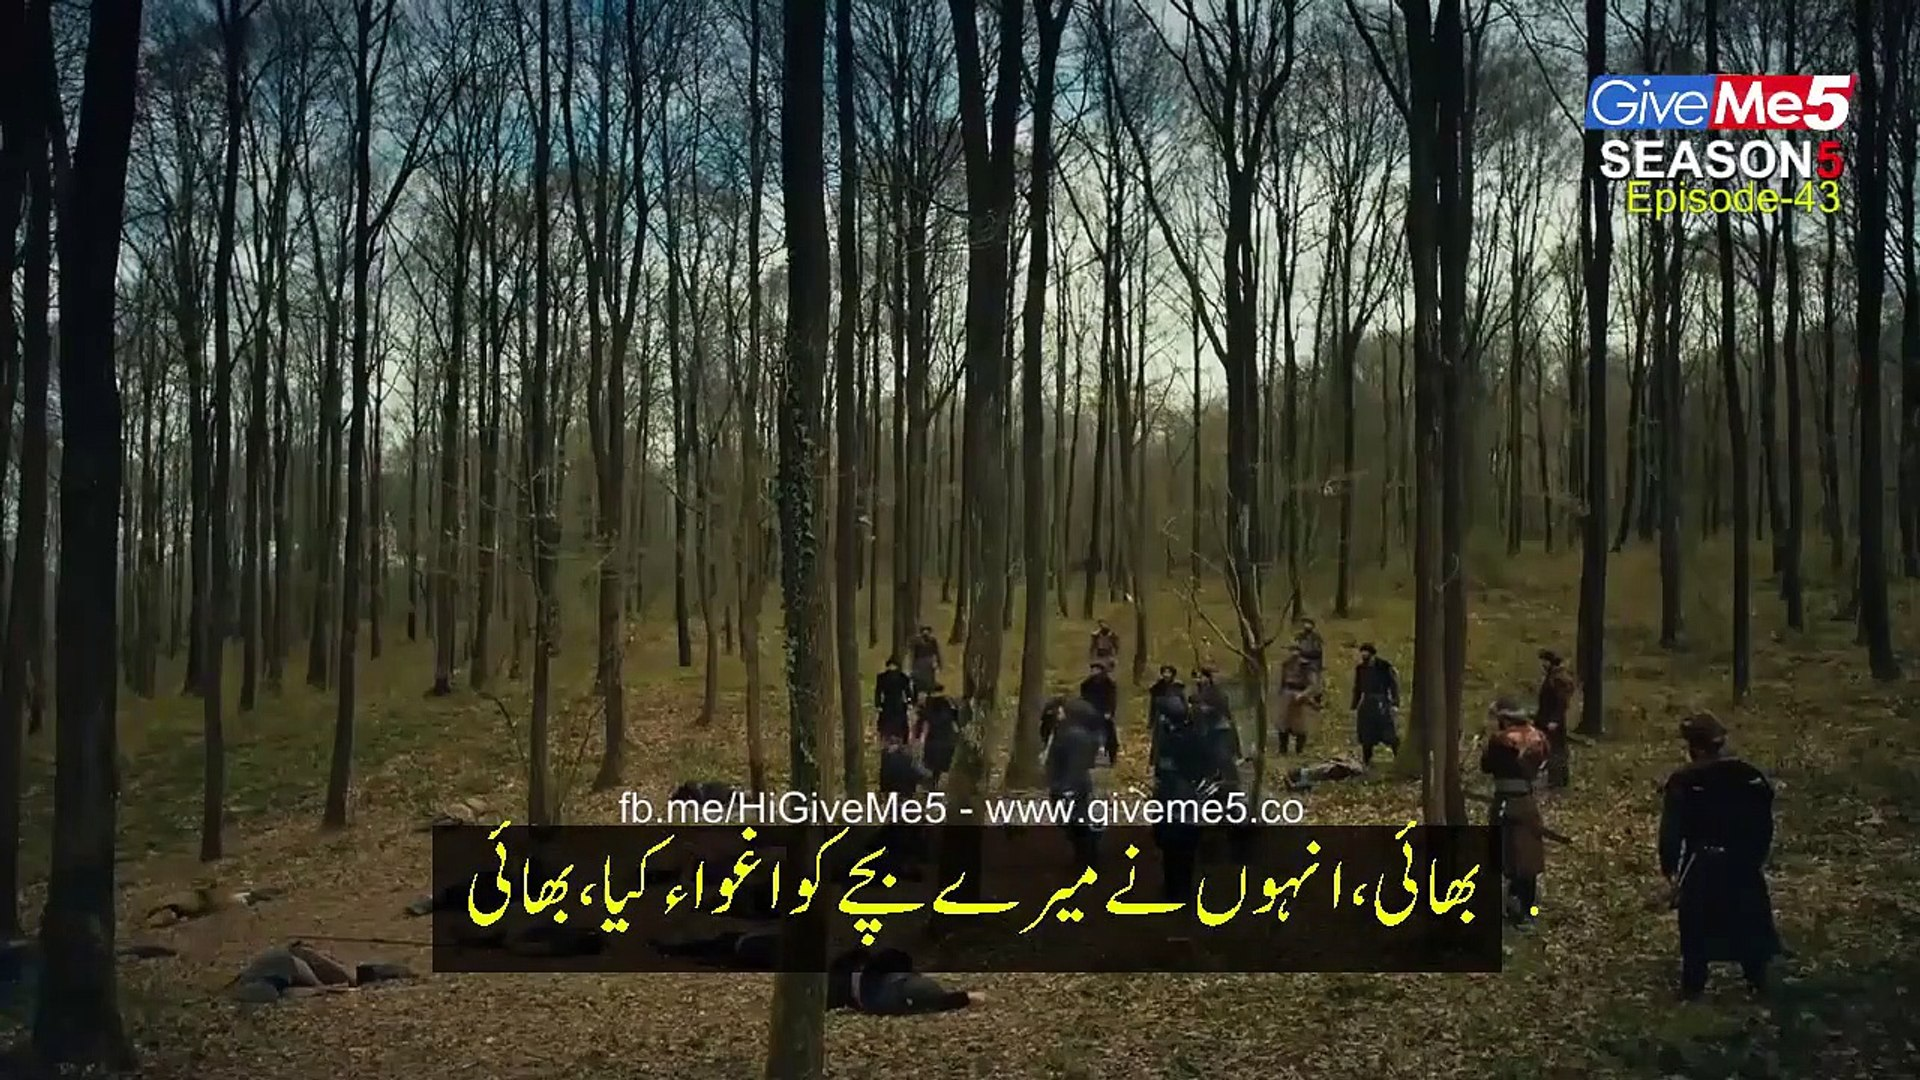 Dirilis Ertugrul Ghazi Season 5 in Urdu Subtitle Episode 43 & 44